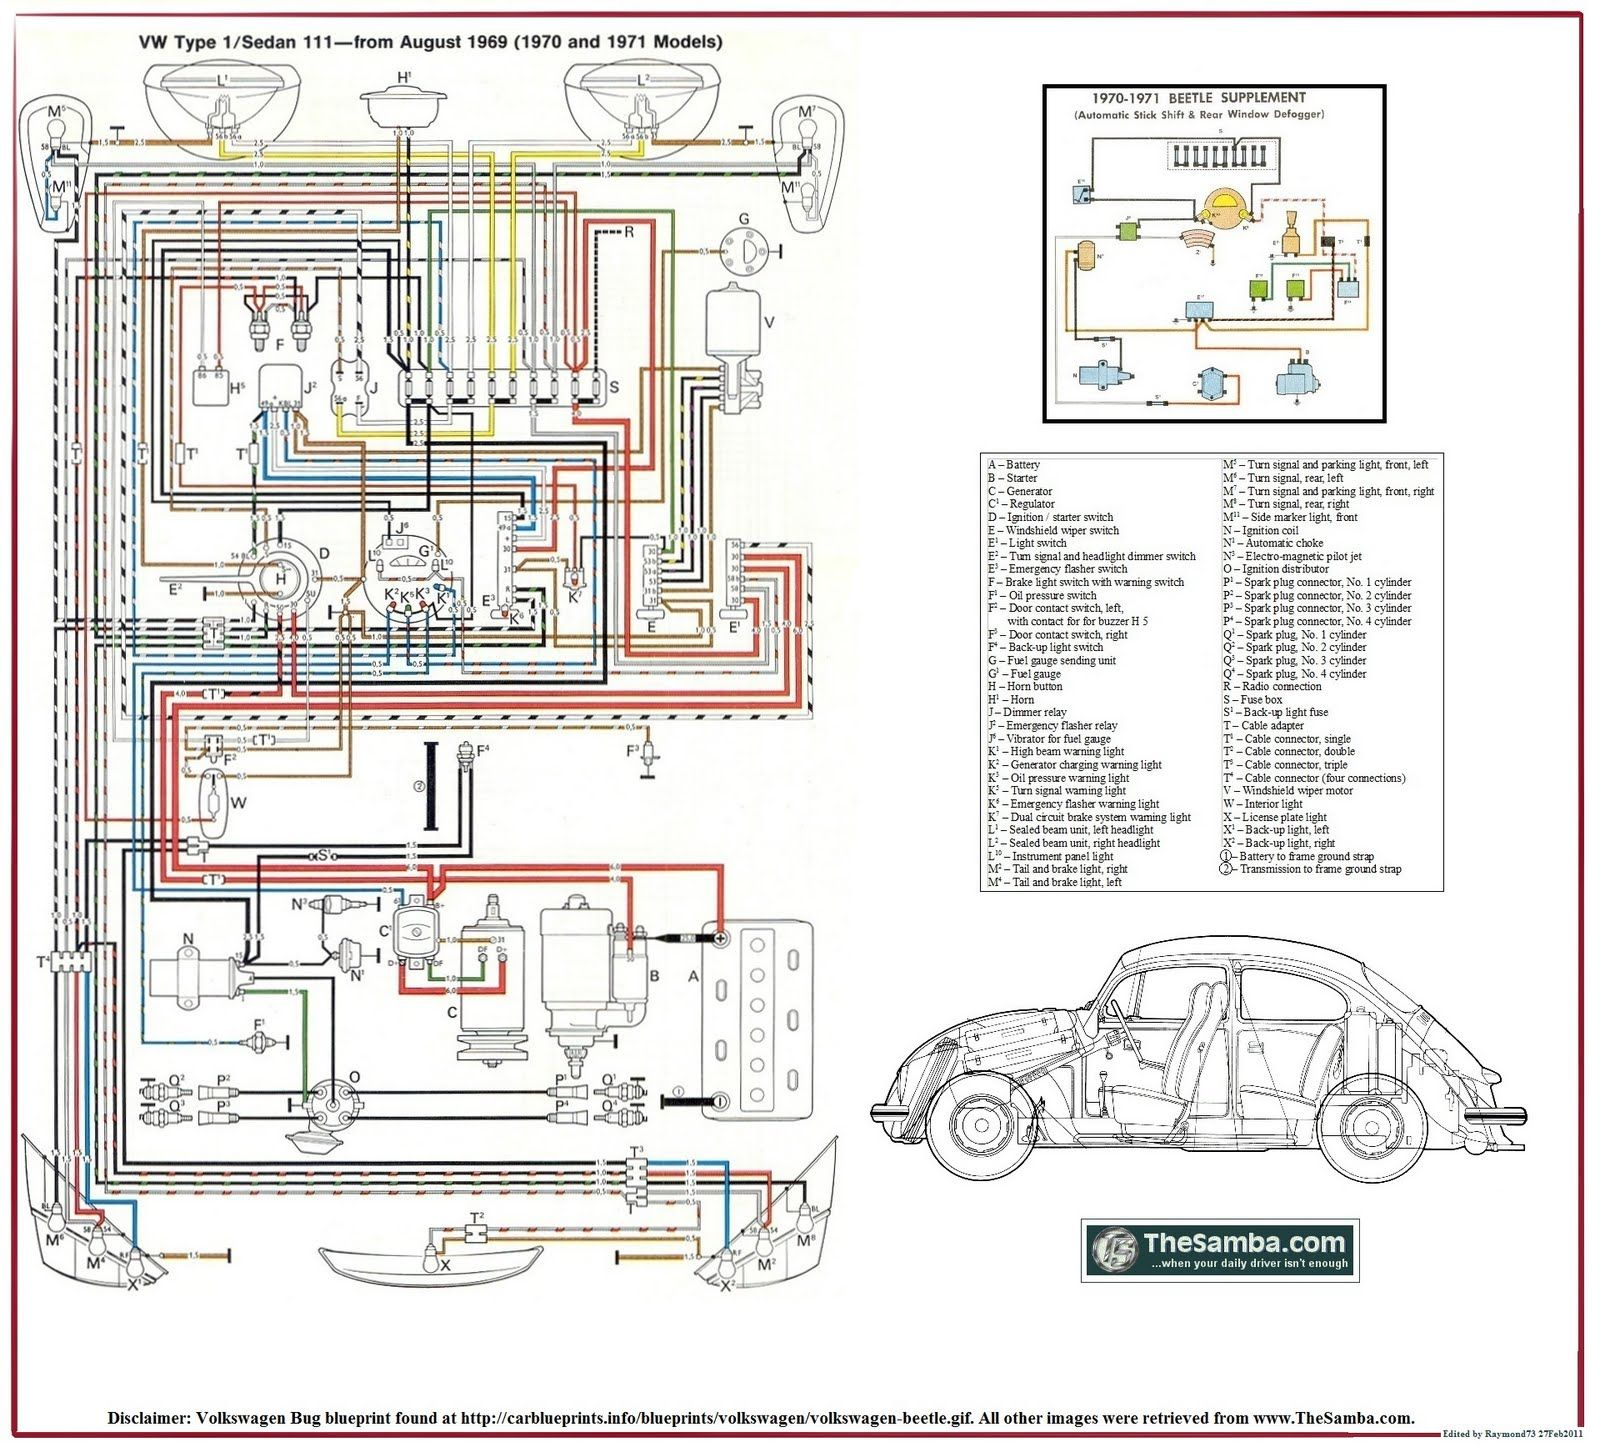 elétrica vw ar esquema elétrico fusca 70 e 71 fusca for volkswagen vw enthusiasts into vw beetle type 1 repair restoration the type 1 wiring diagrams and specifications below be of gr